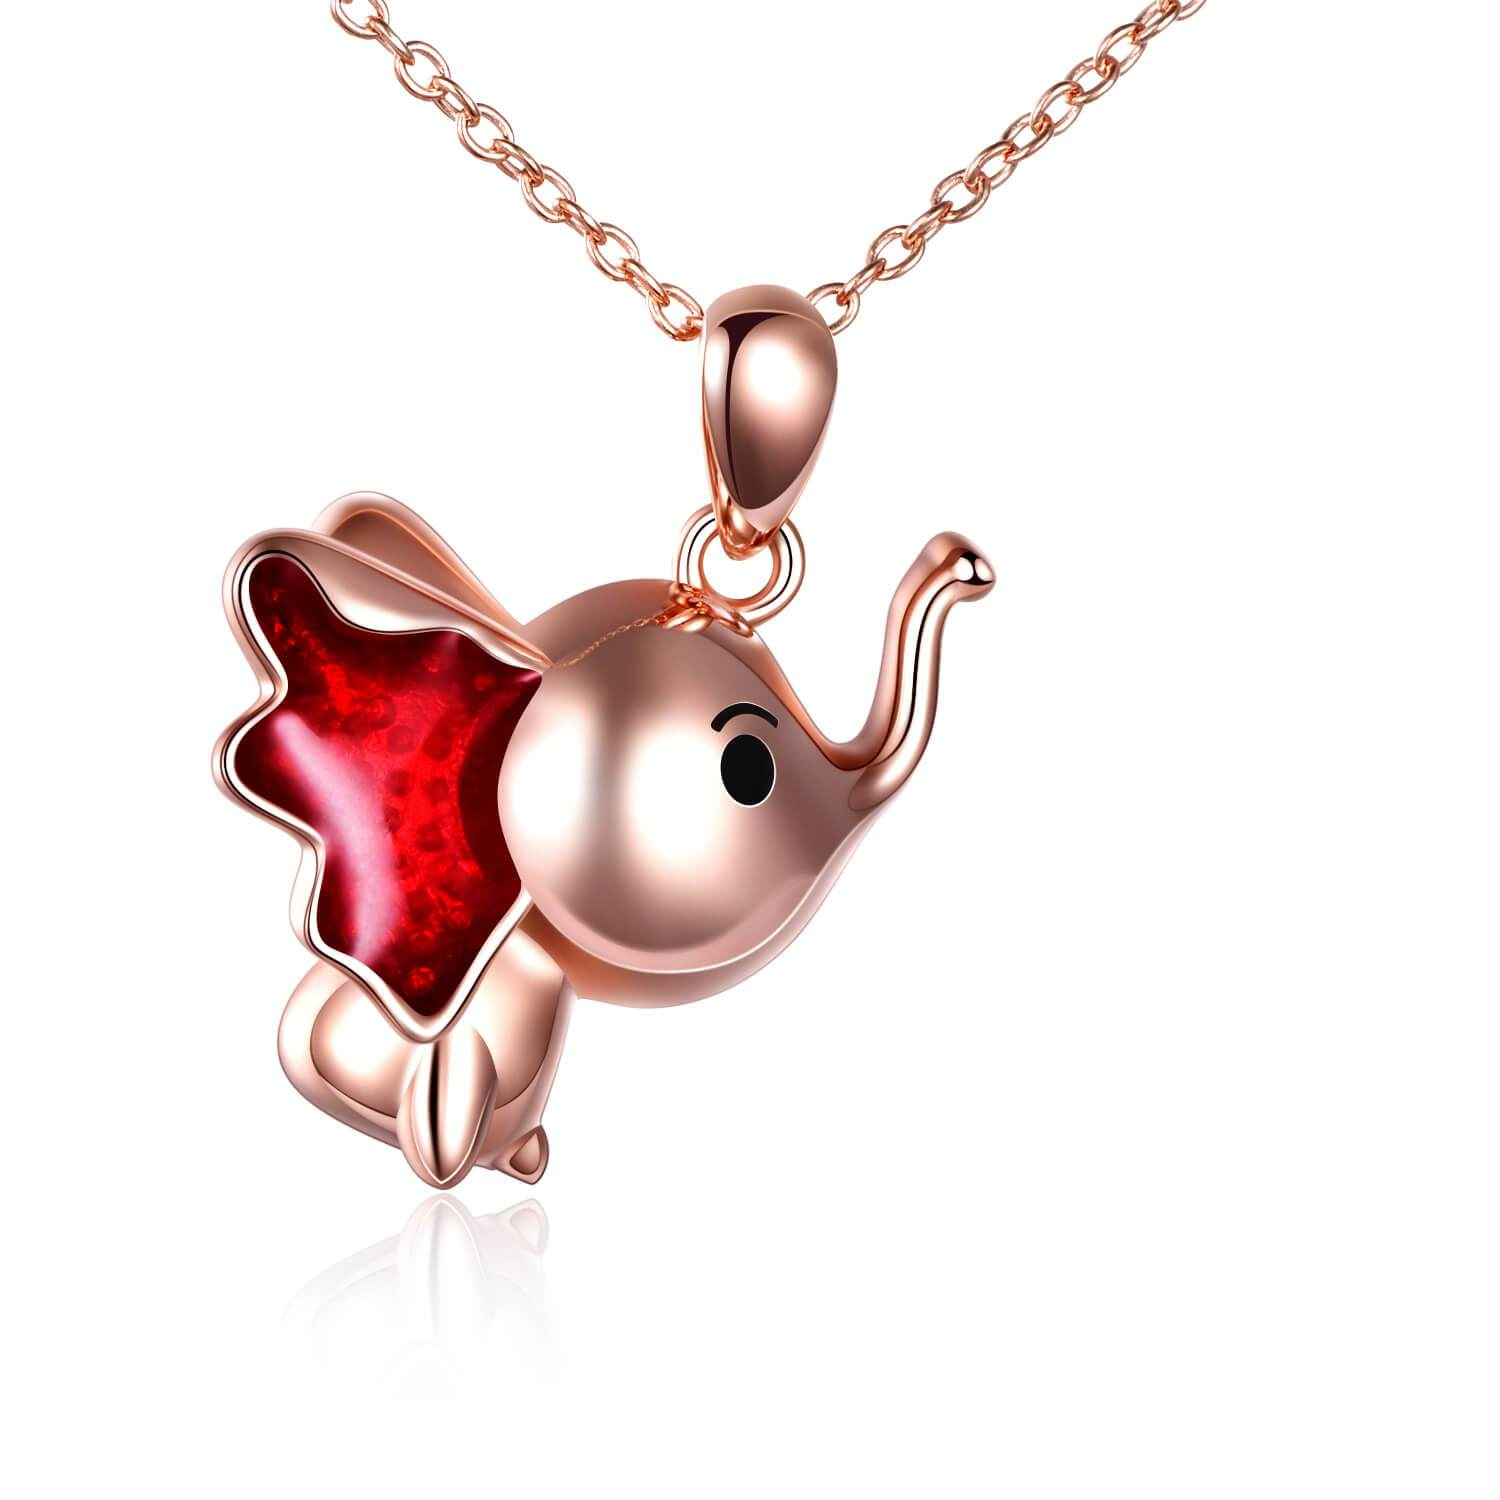 Sterling Silver Cute Elephant Necklace Good Luck Animal Dumbo Pendant Holiday Jewelry Gift for Girls Teens Elephant Lover